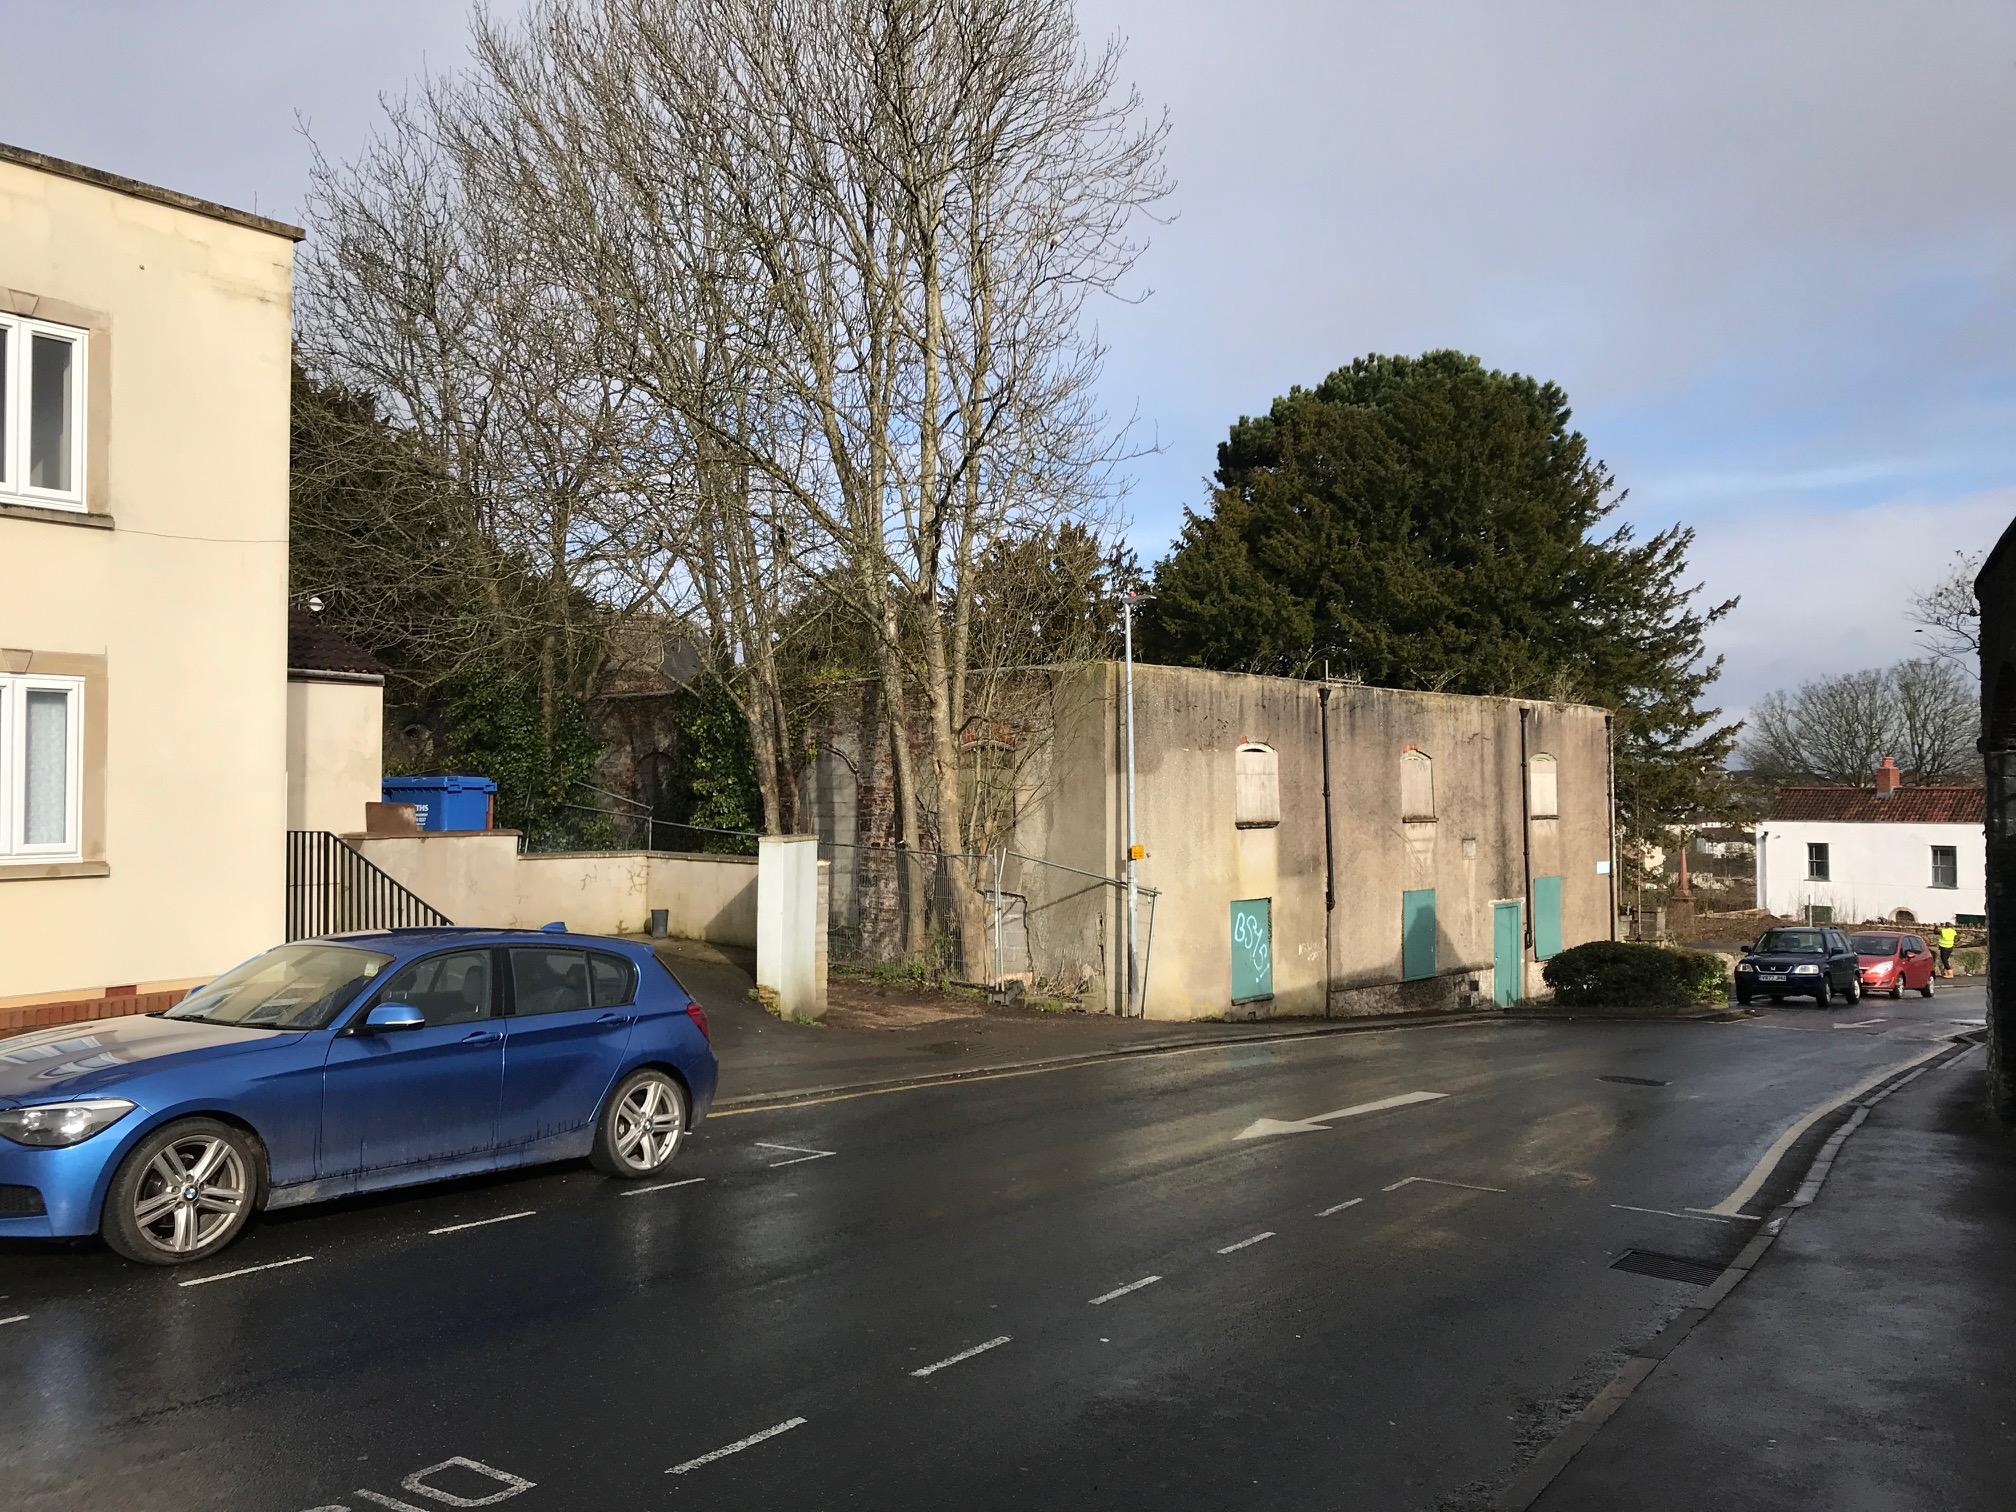 CROSSMAN HOMES TO BREATHE NEW LIFE INTO BRISTOL'S WHITFIELD TABERNACLE